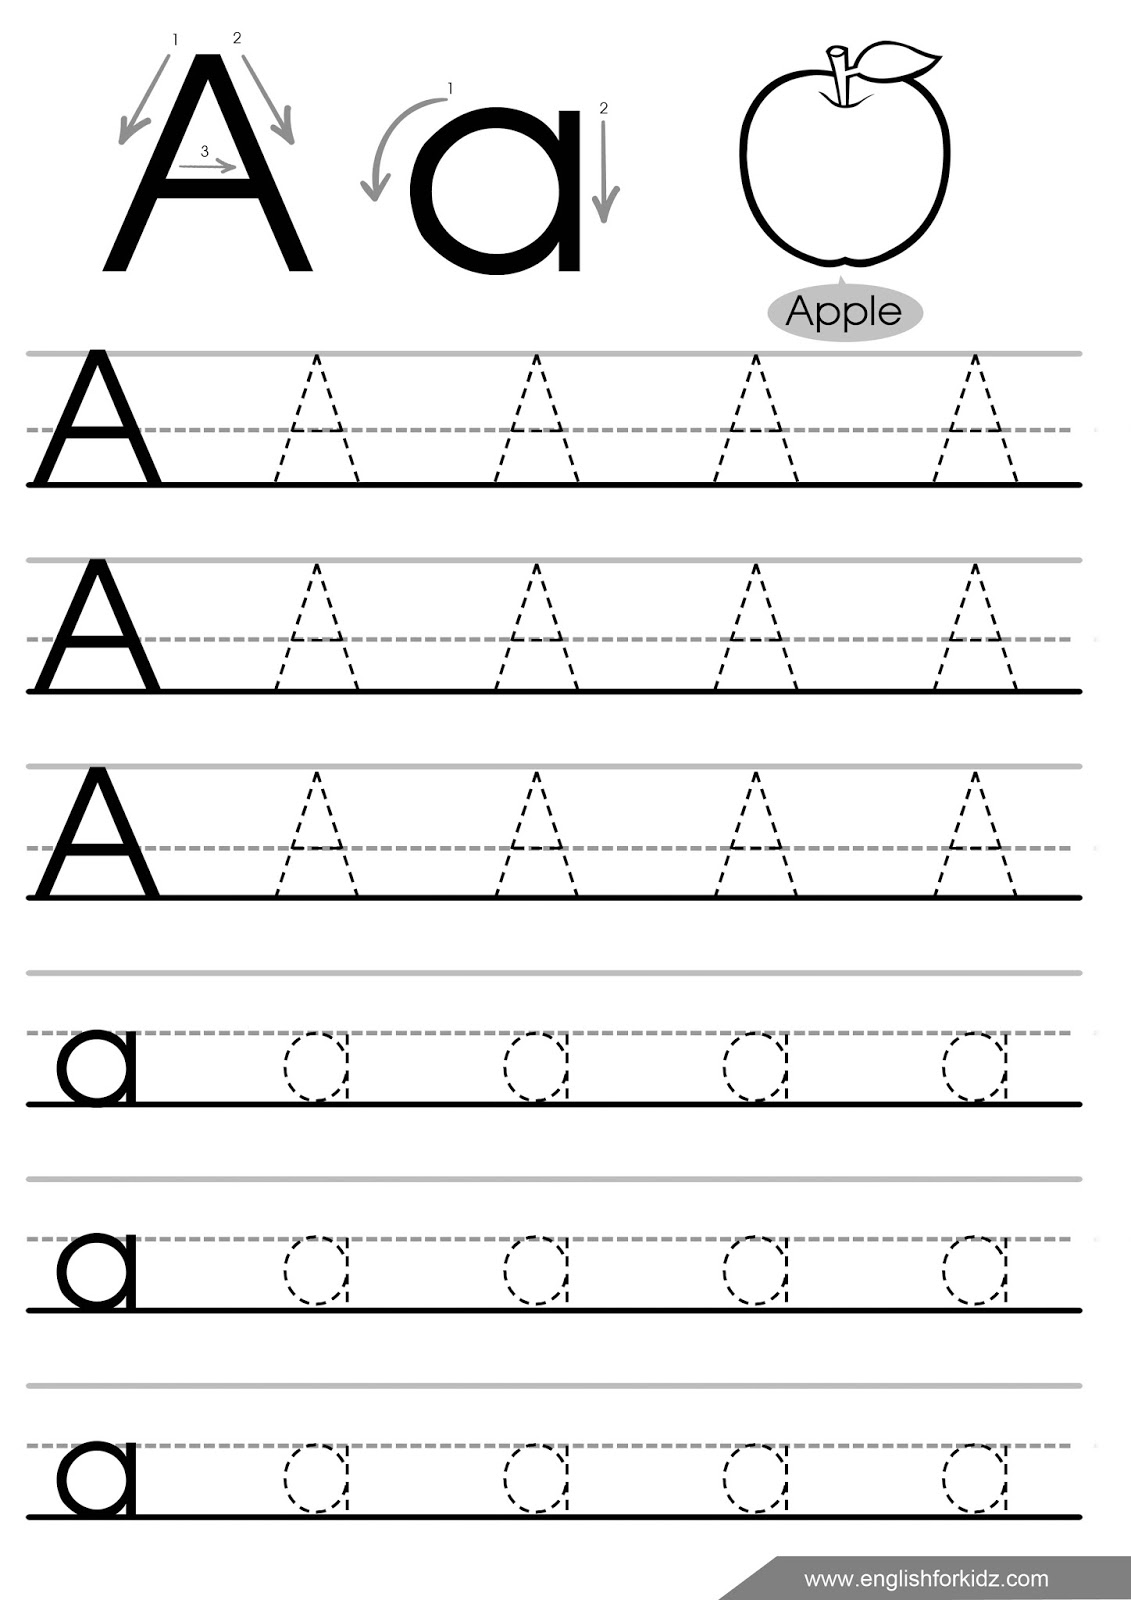 Letter Tracing Worksheets (Letters A - J) pertaining to Alphabet Tracing Images